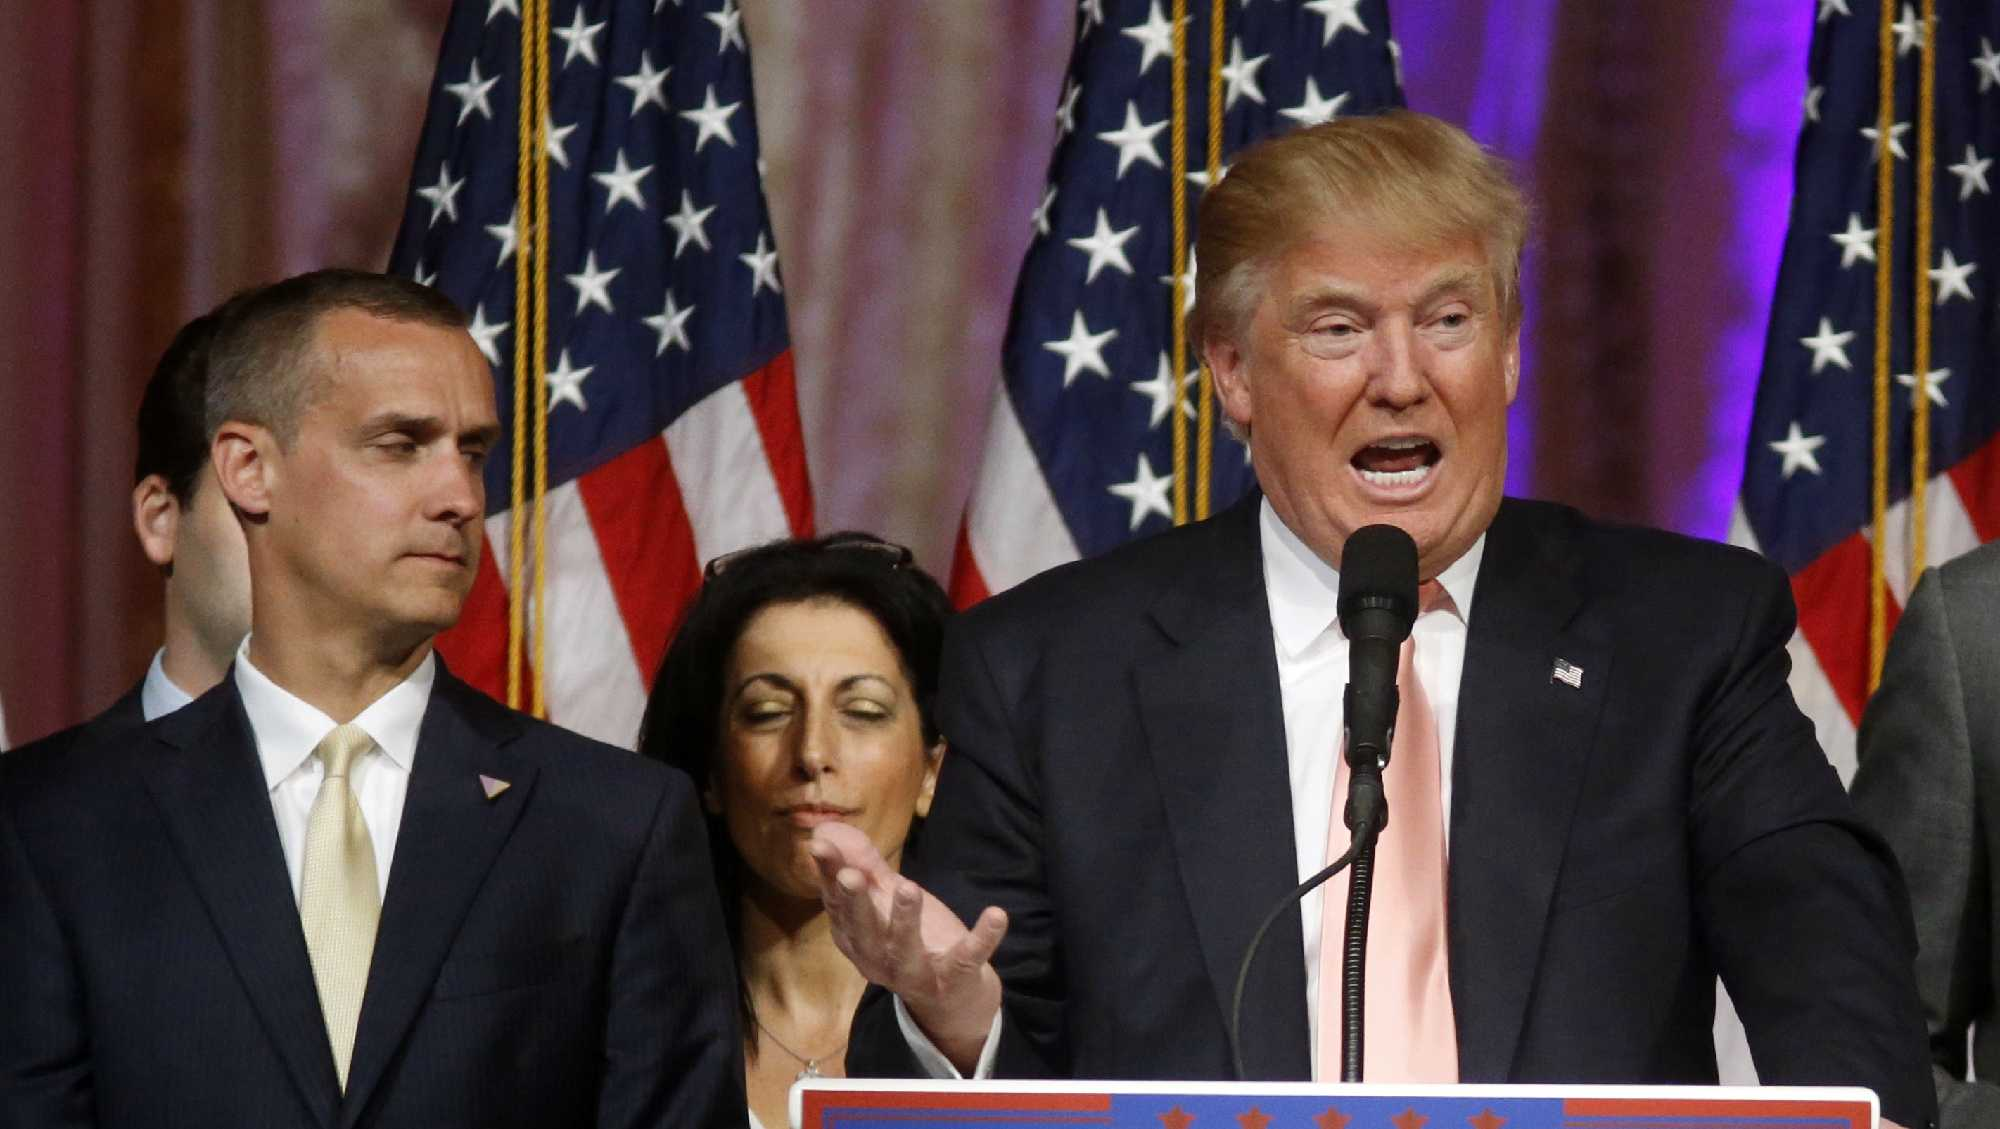 Republican presidential candidate Donald Trump speaks to supporters at his primary election night event at his Mar-a-Lago Club in Palm Beach, Fla., Tuesday, March 15, 2016. At left is his campaign manager Corey Lewandowski.